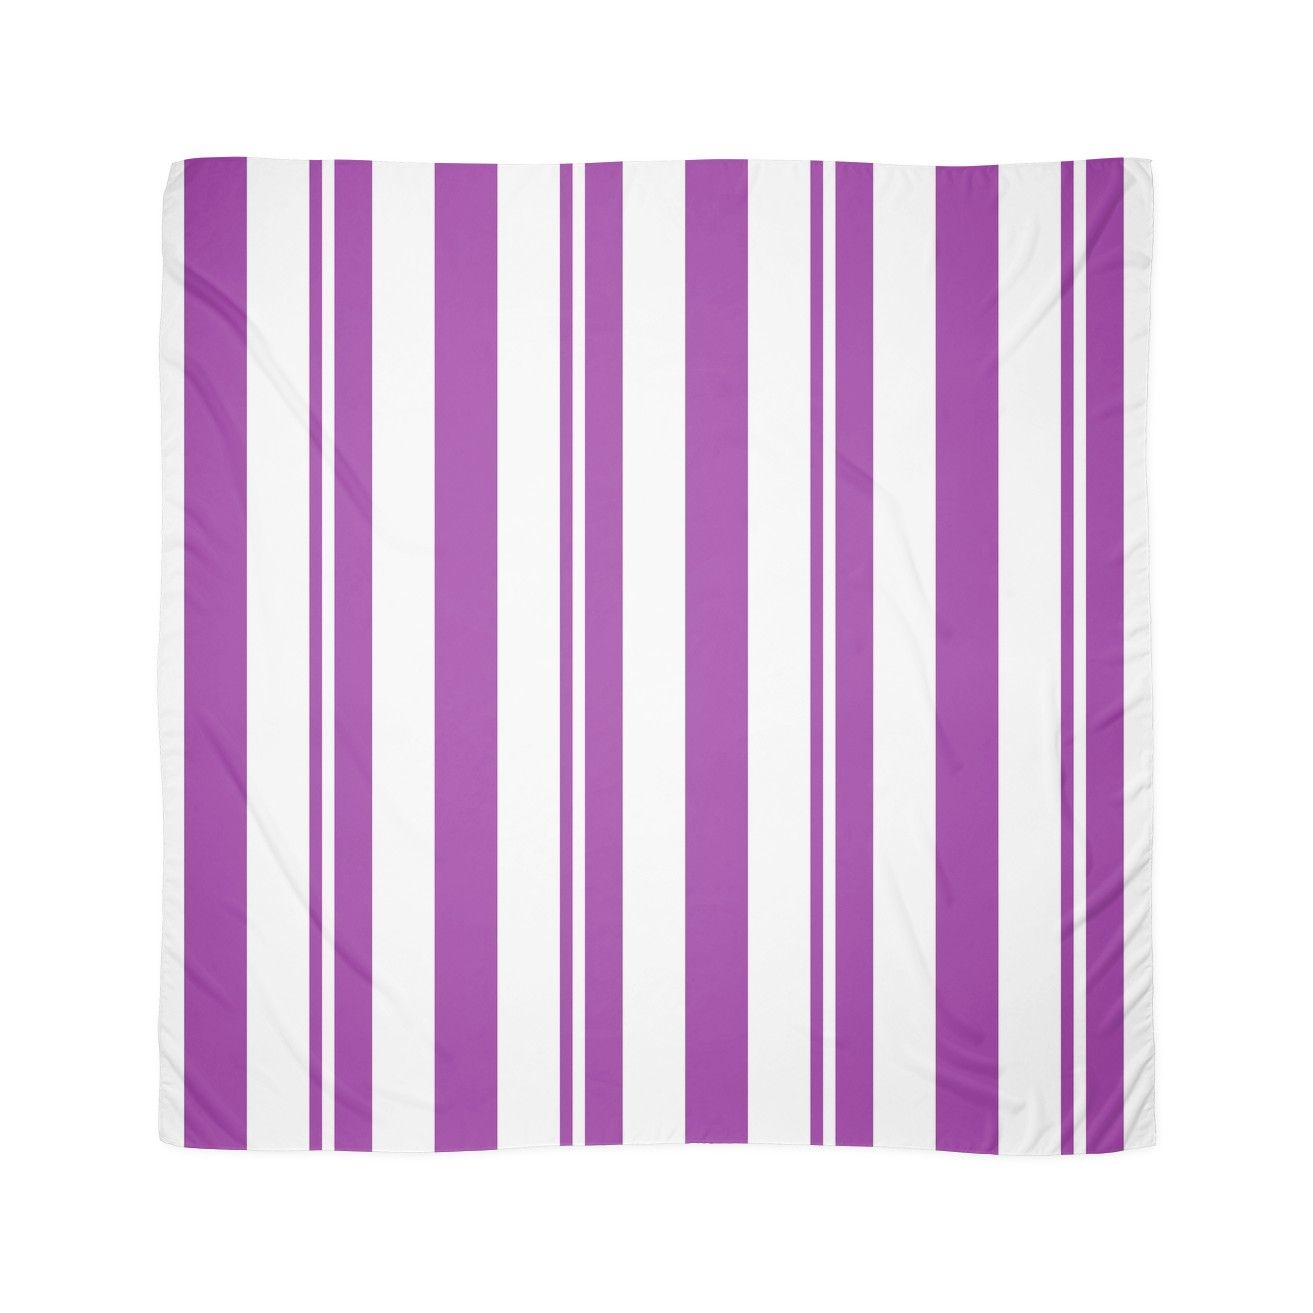 Dapper Dans - Purple Scarf